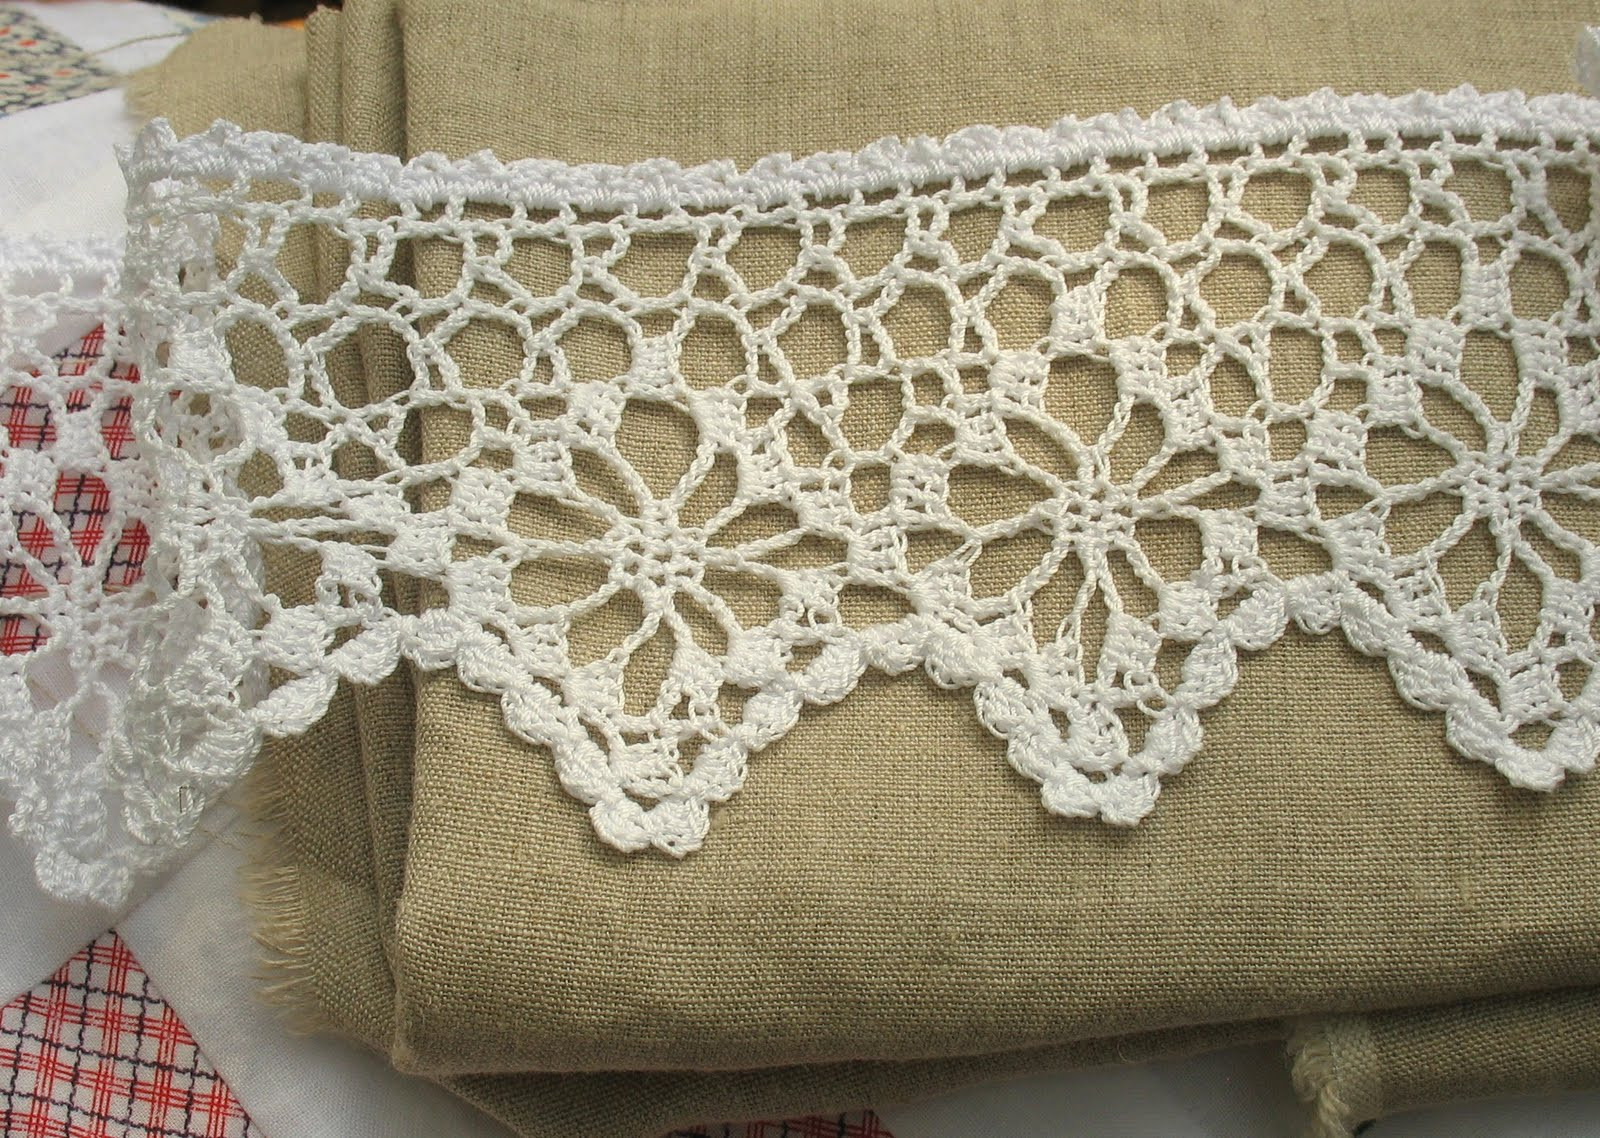 Crochet Lace Edging Lovely Amy Brumley Crocheted Lace Curtains Of Charming 48 Images Crochet Lace Edging